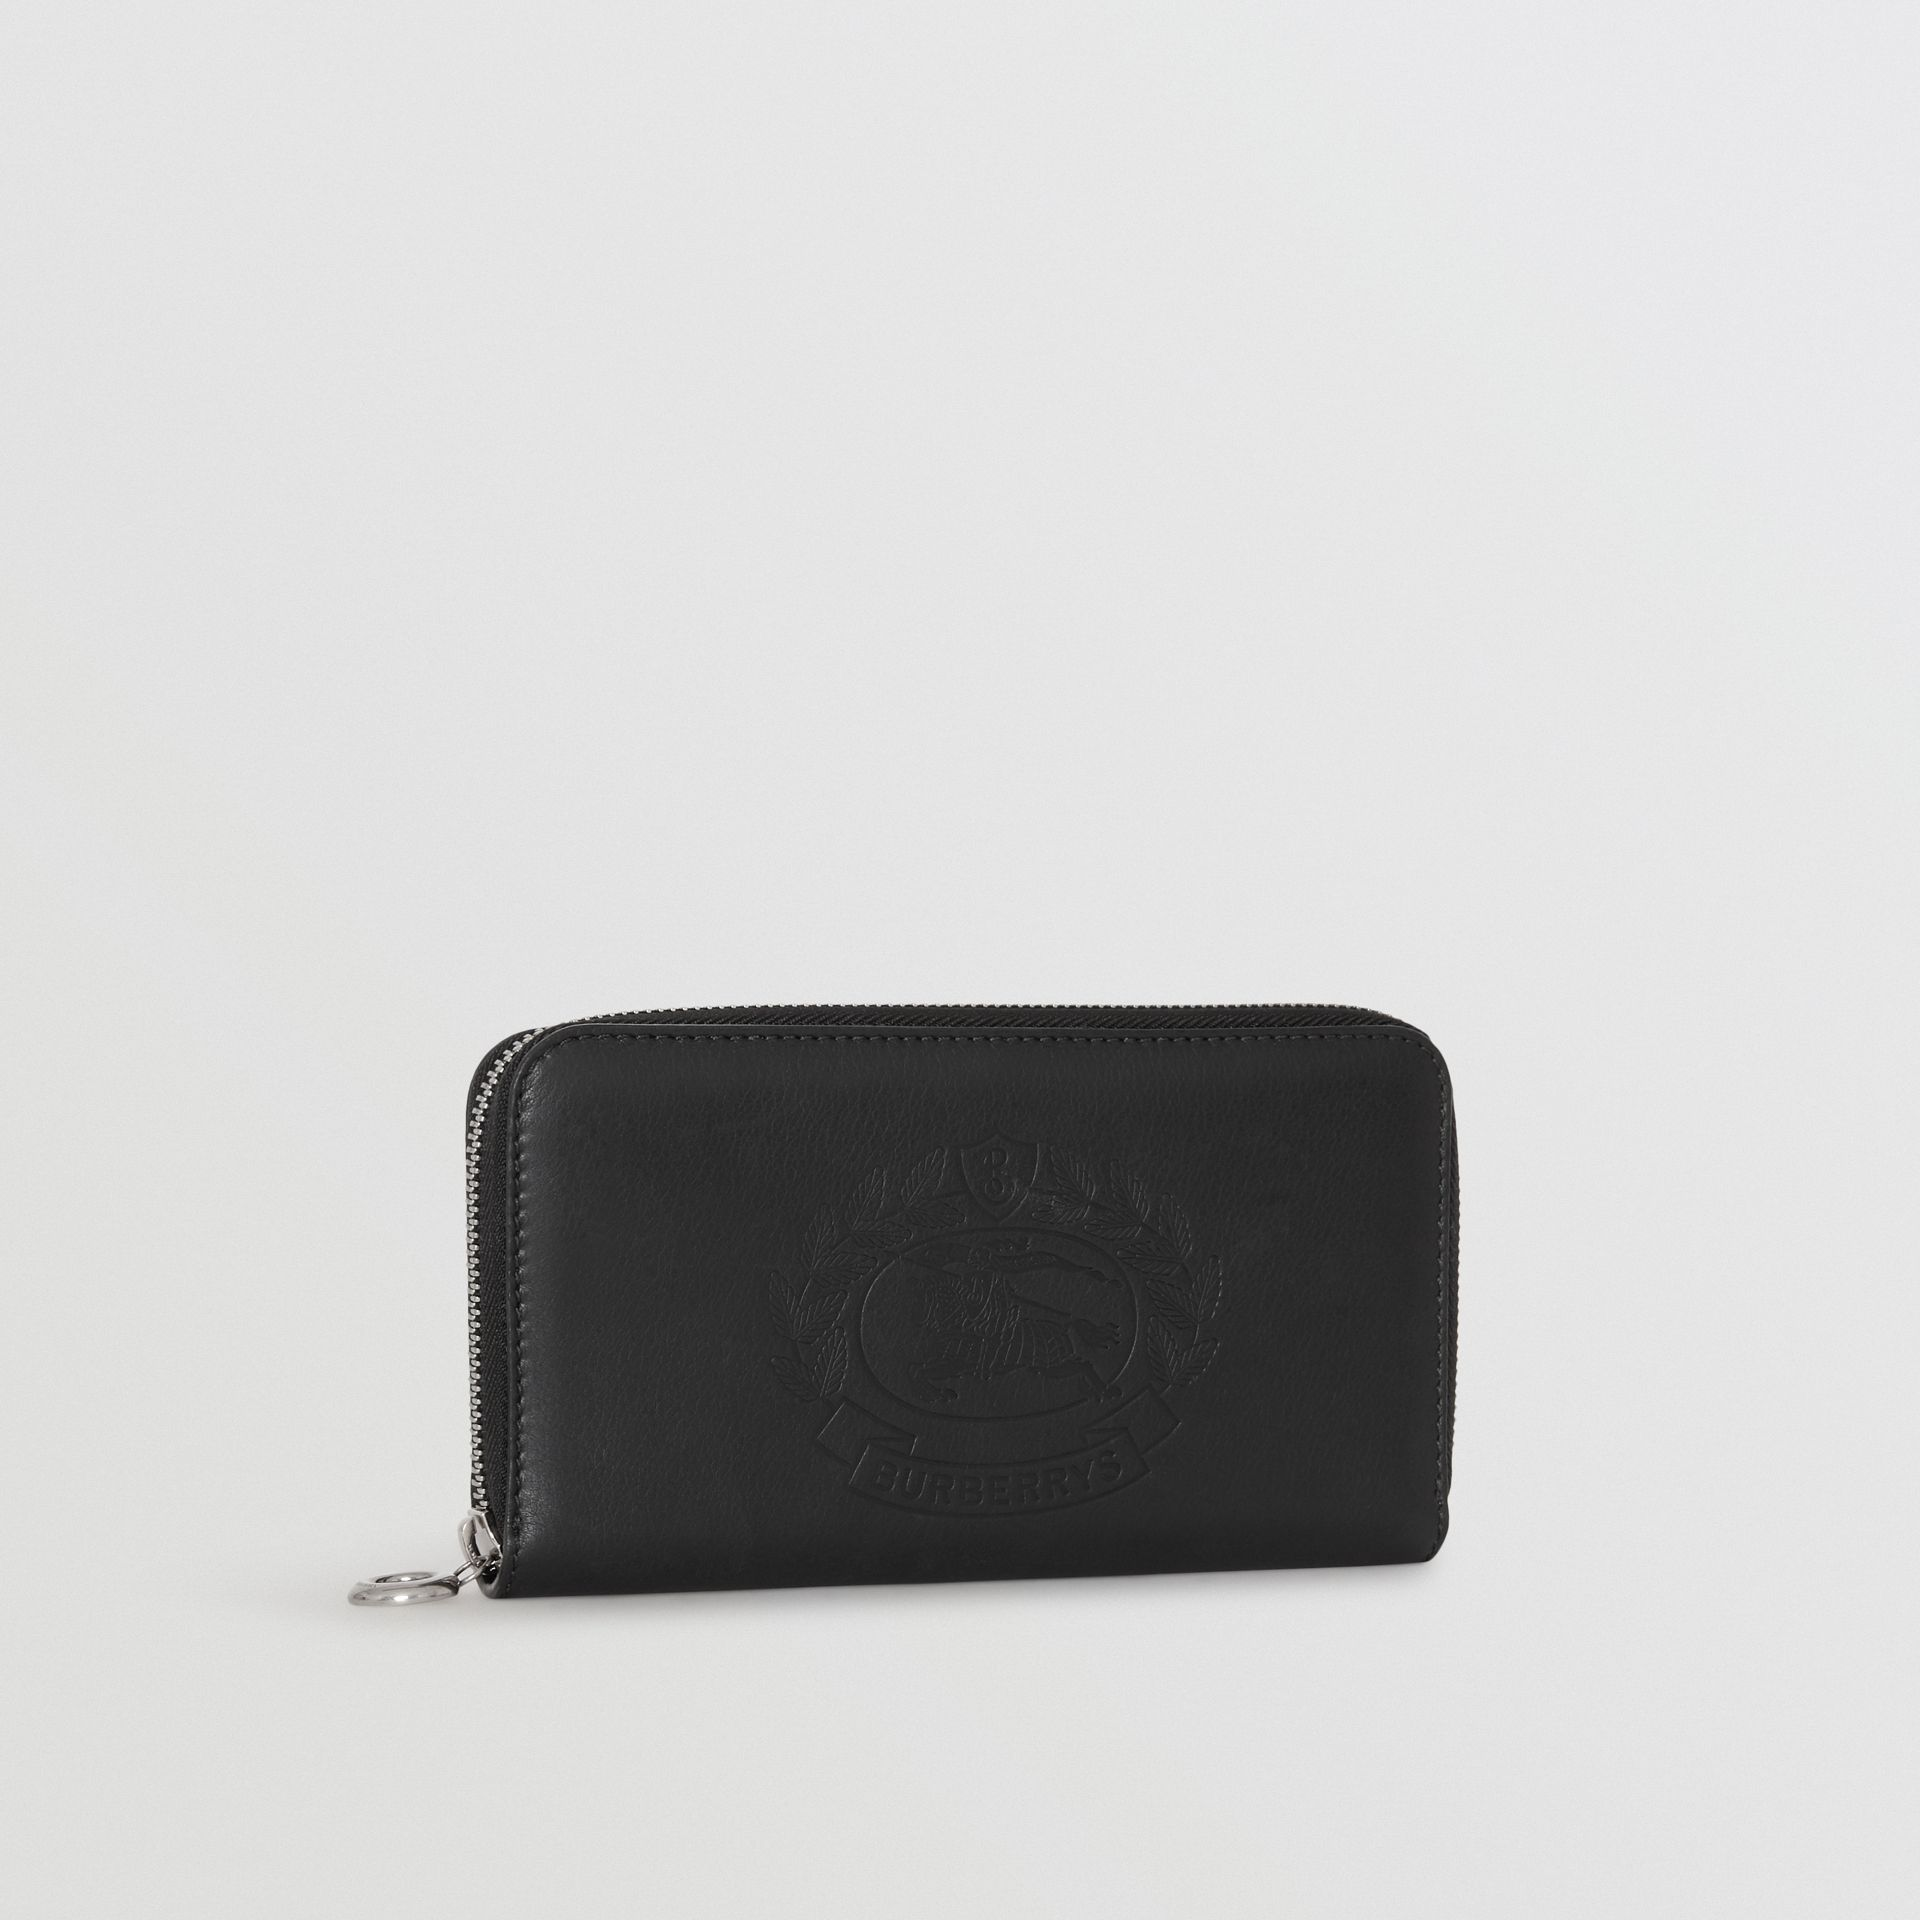 Embossed Crest Two-tone Leather Ziparound Wallet in Black - Women | Burberry United States - gallery image 3